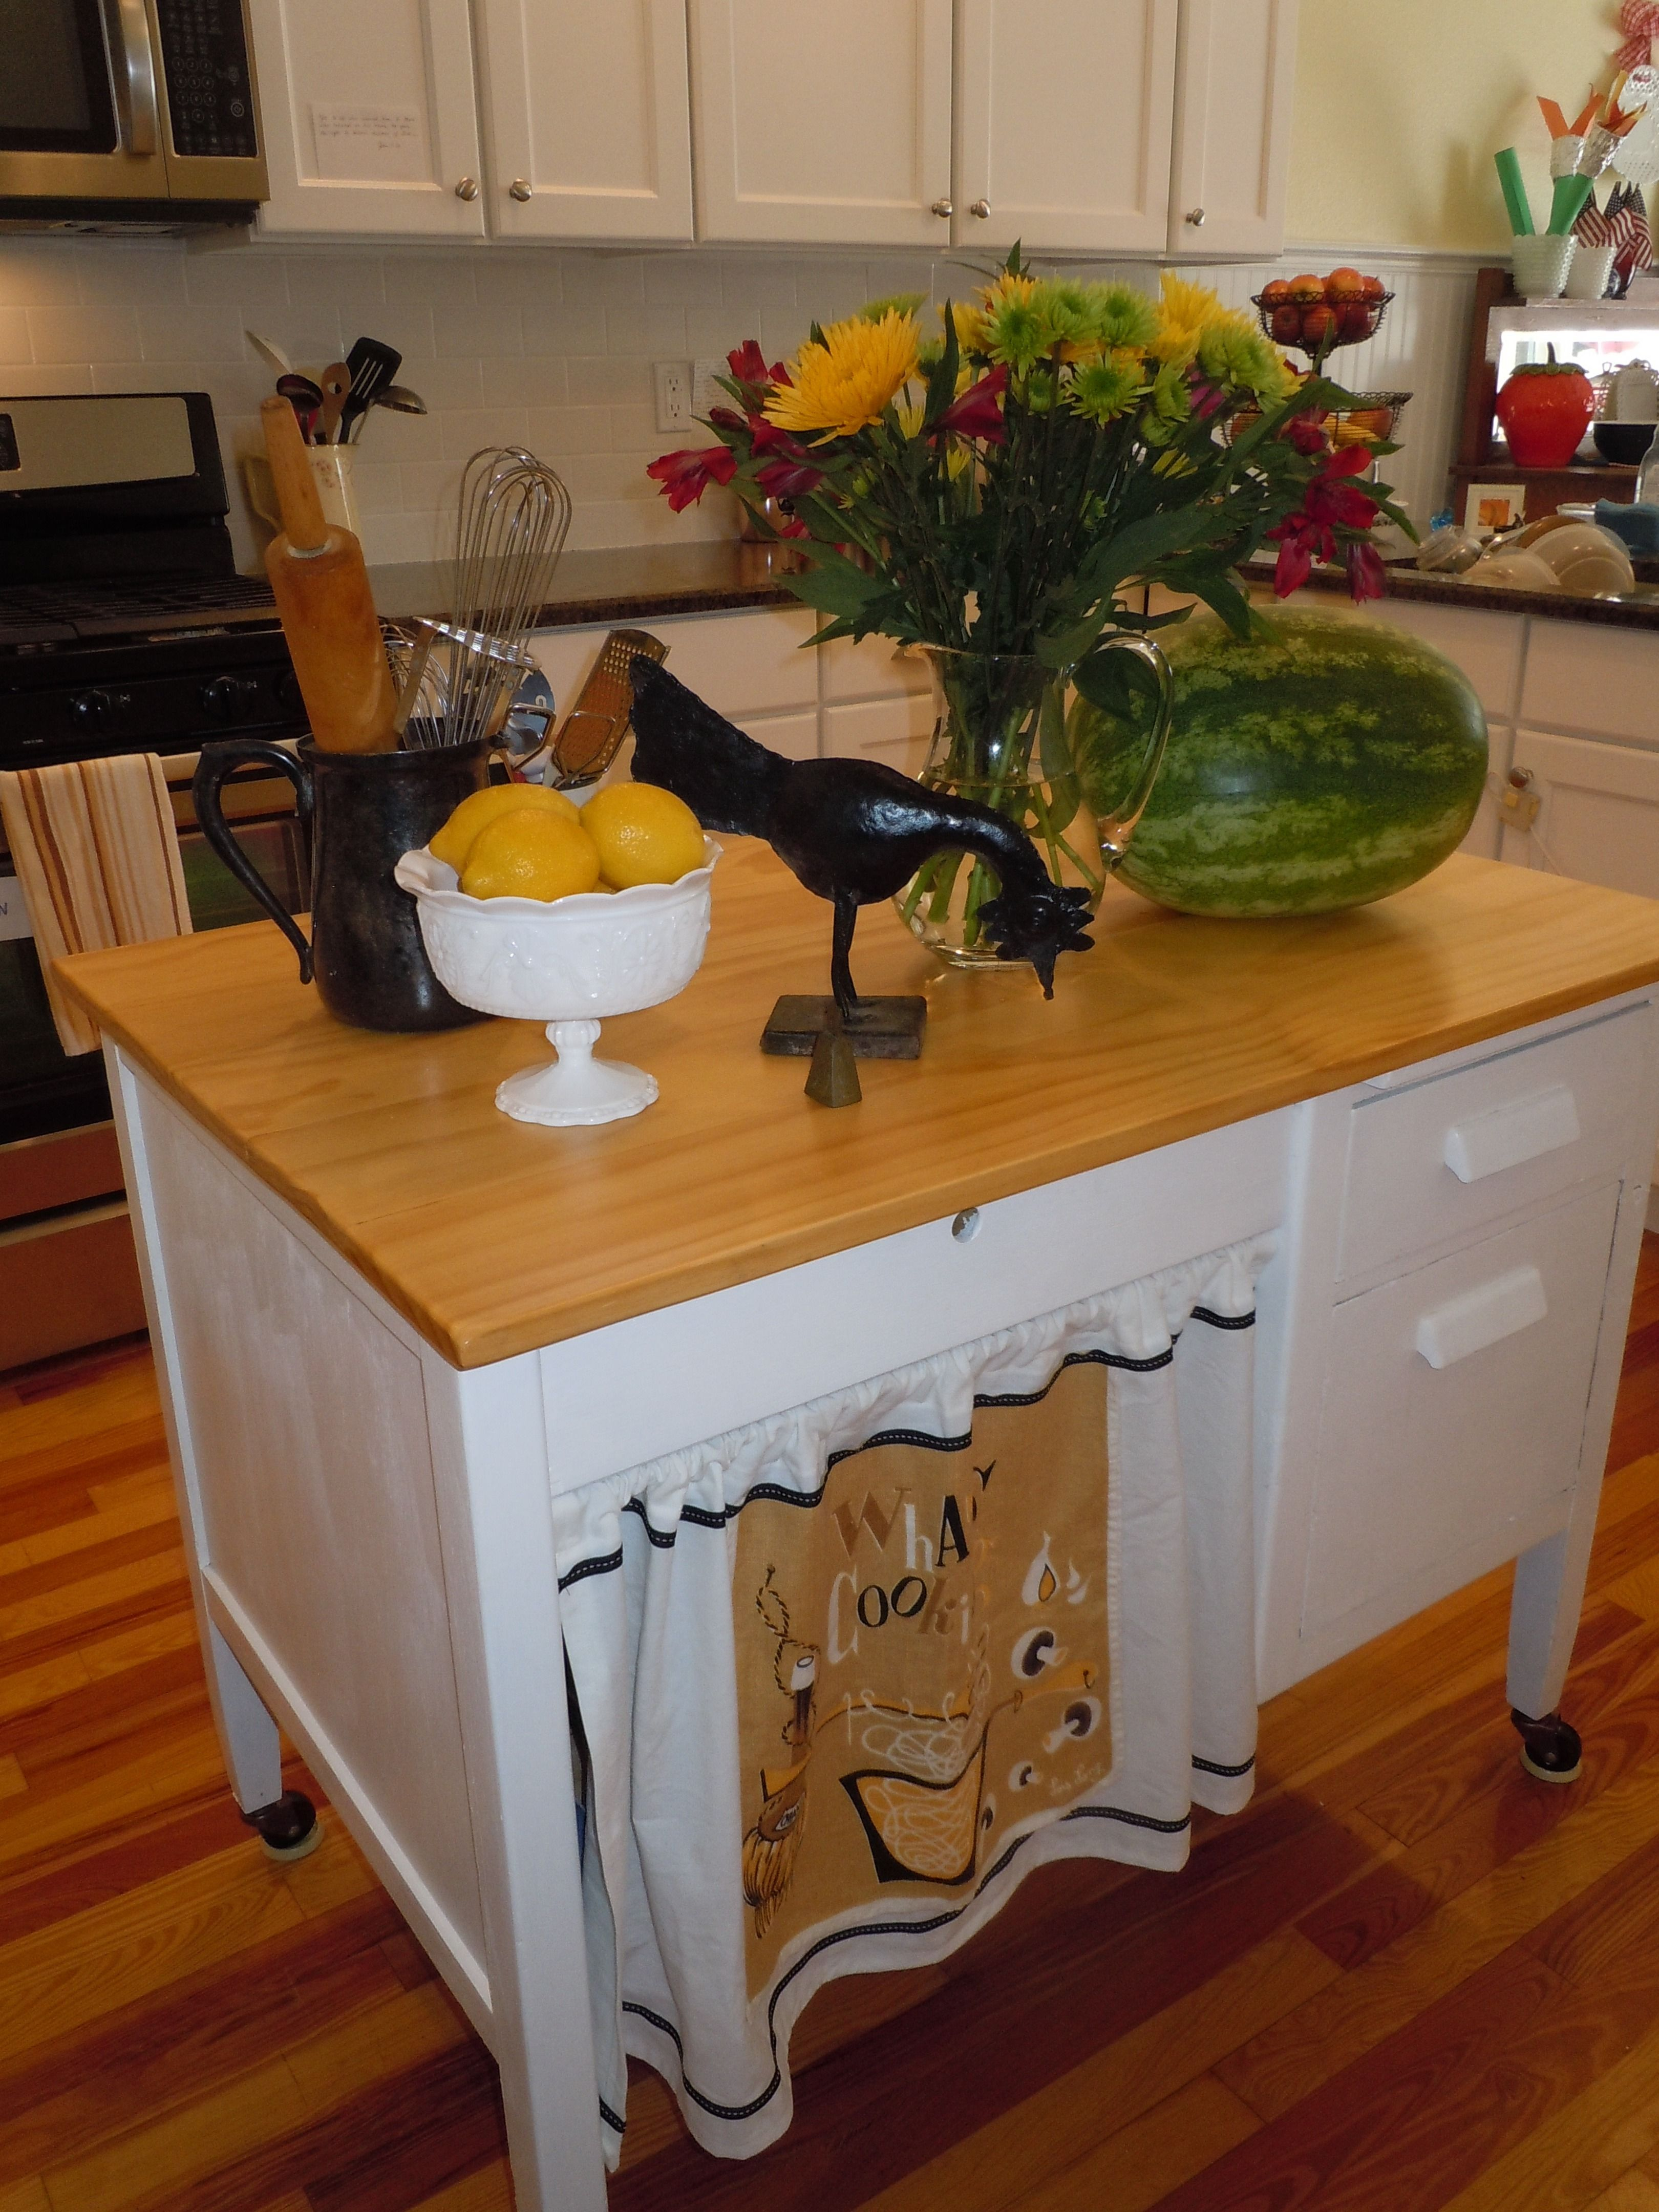 Repurposed Kitchen Island Repurpose An Old Student Desk Into A Kitchen Island For The